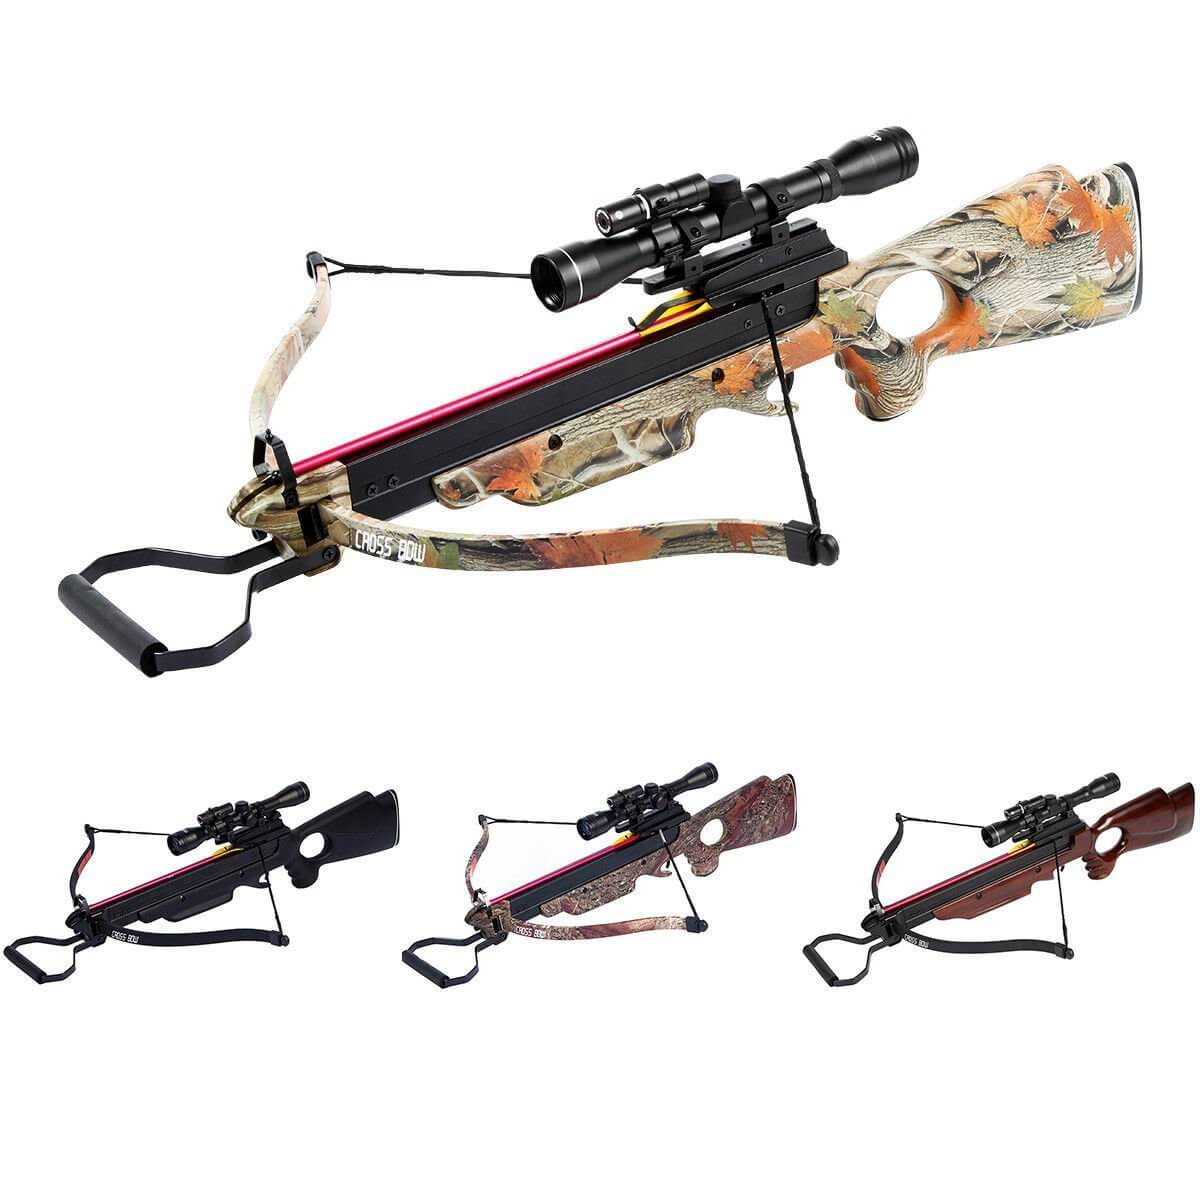 150 lbs black/wood/camouflage hunting crossbow